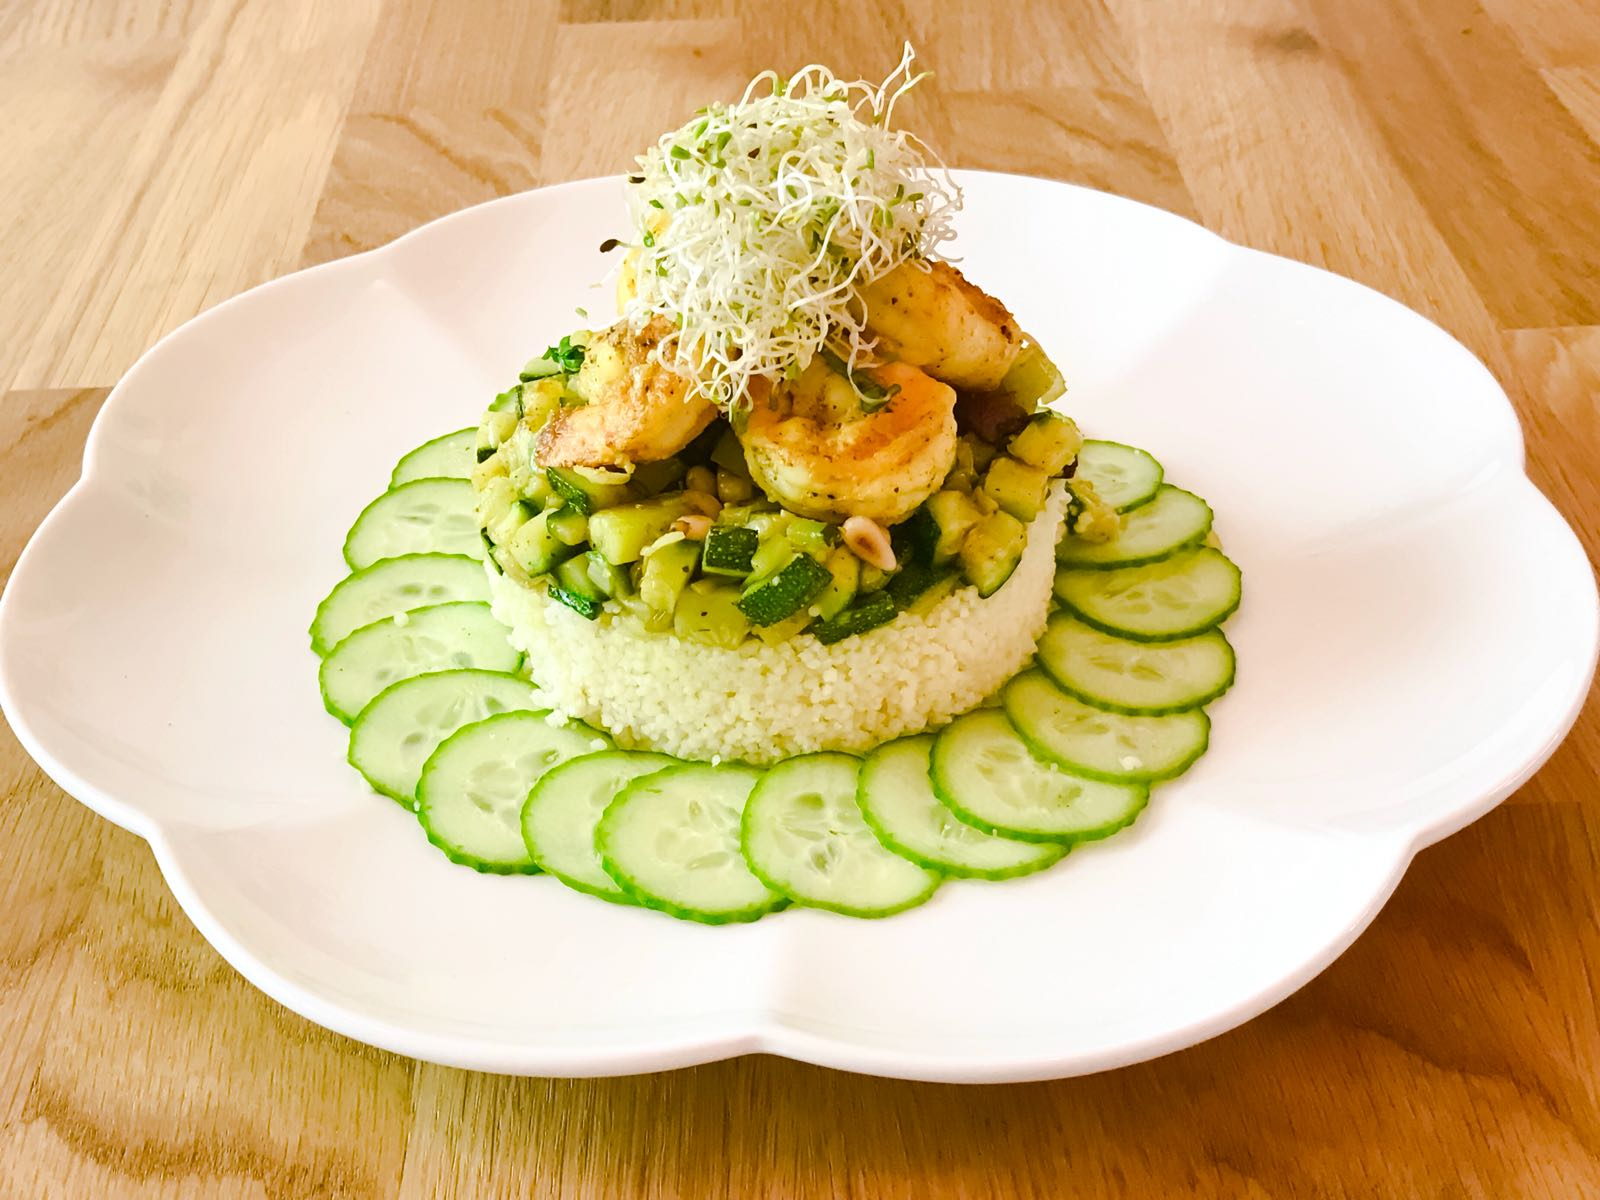 Cous cous with shrimp, zucchini and curry - Kitchen90210